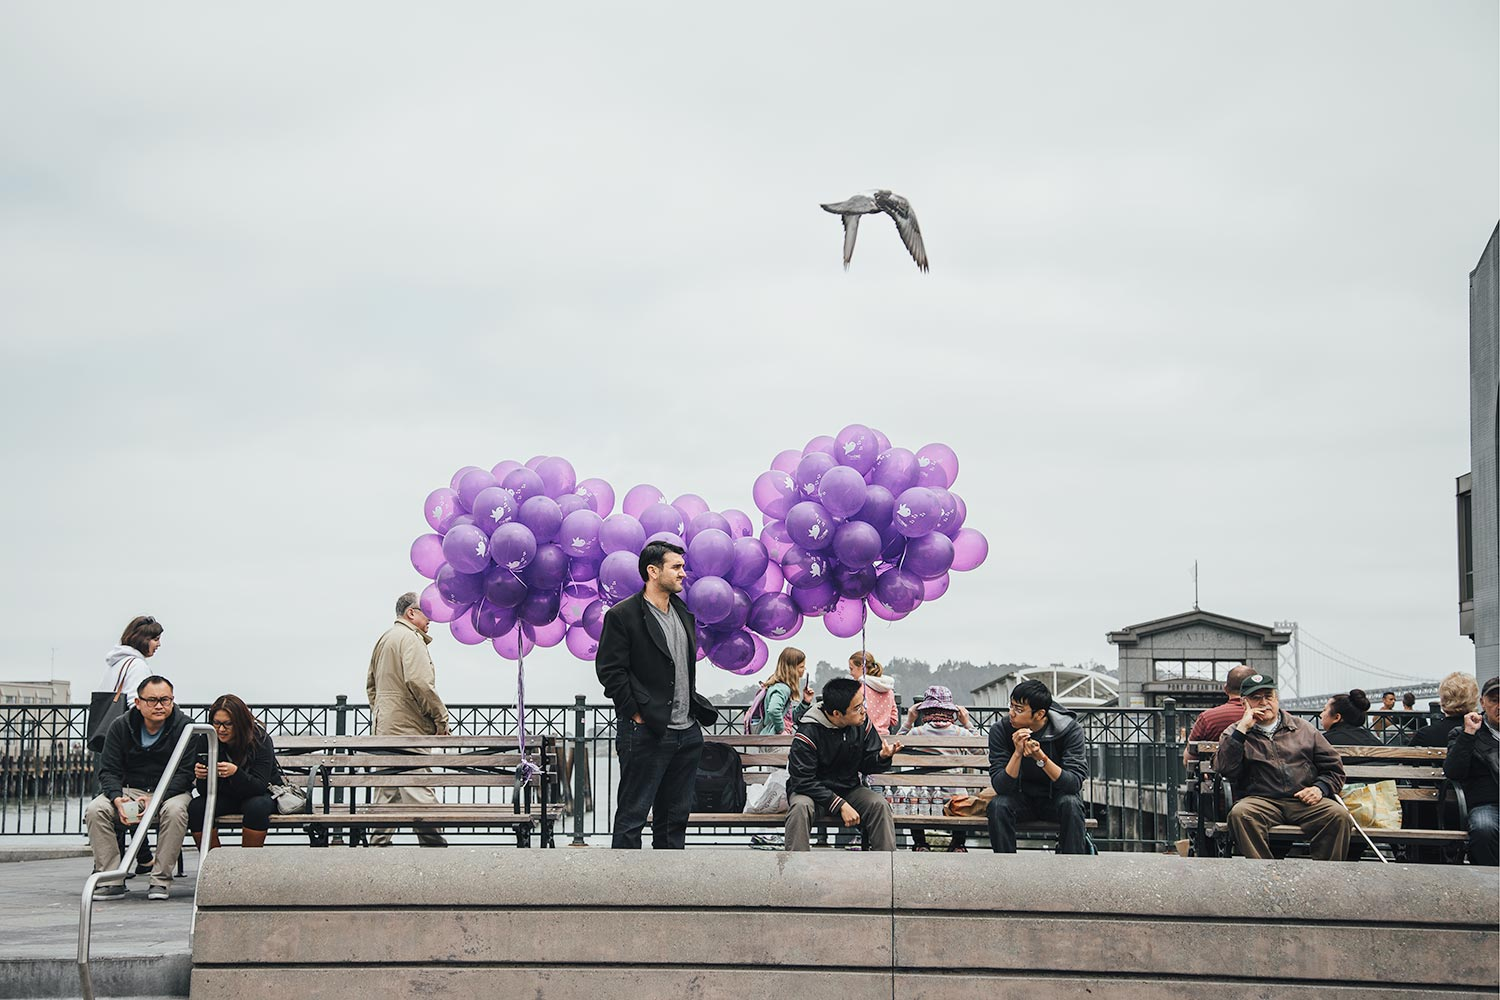 Man and purple balloons behind him